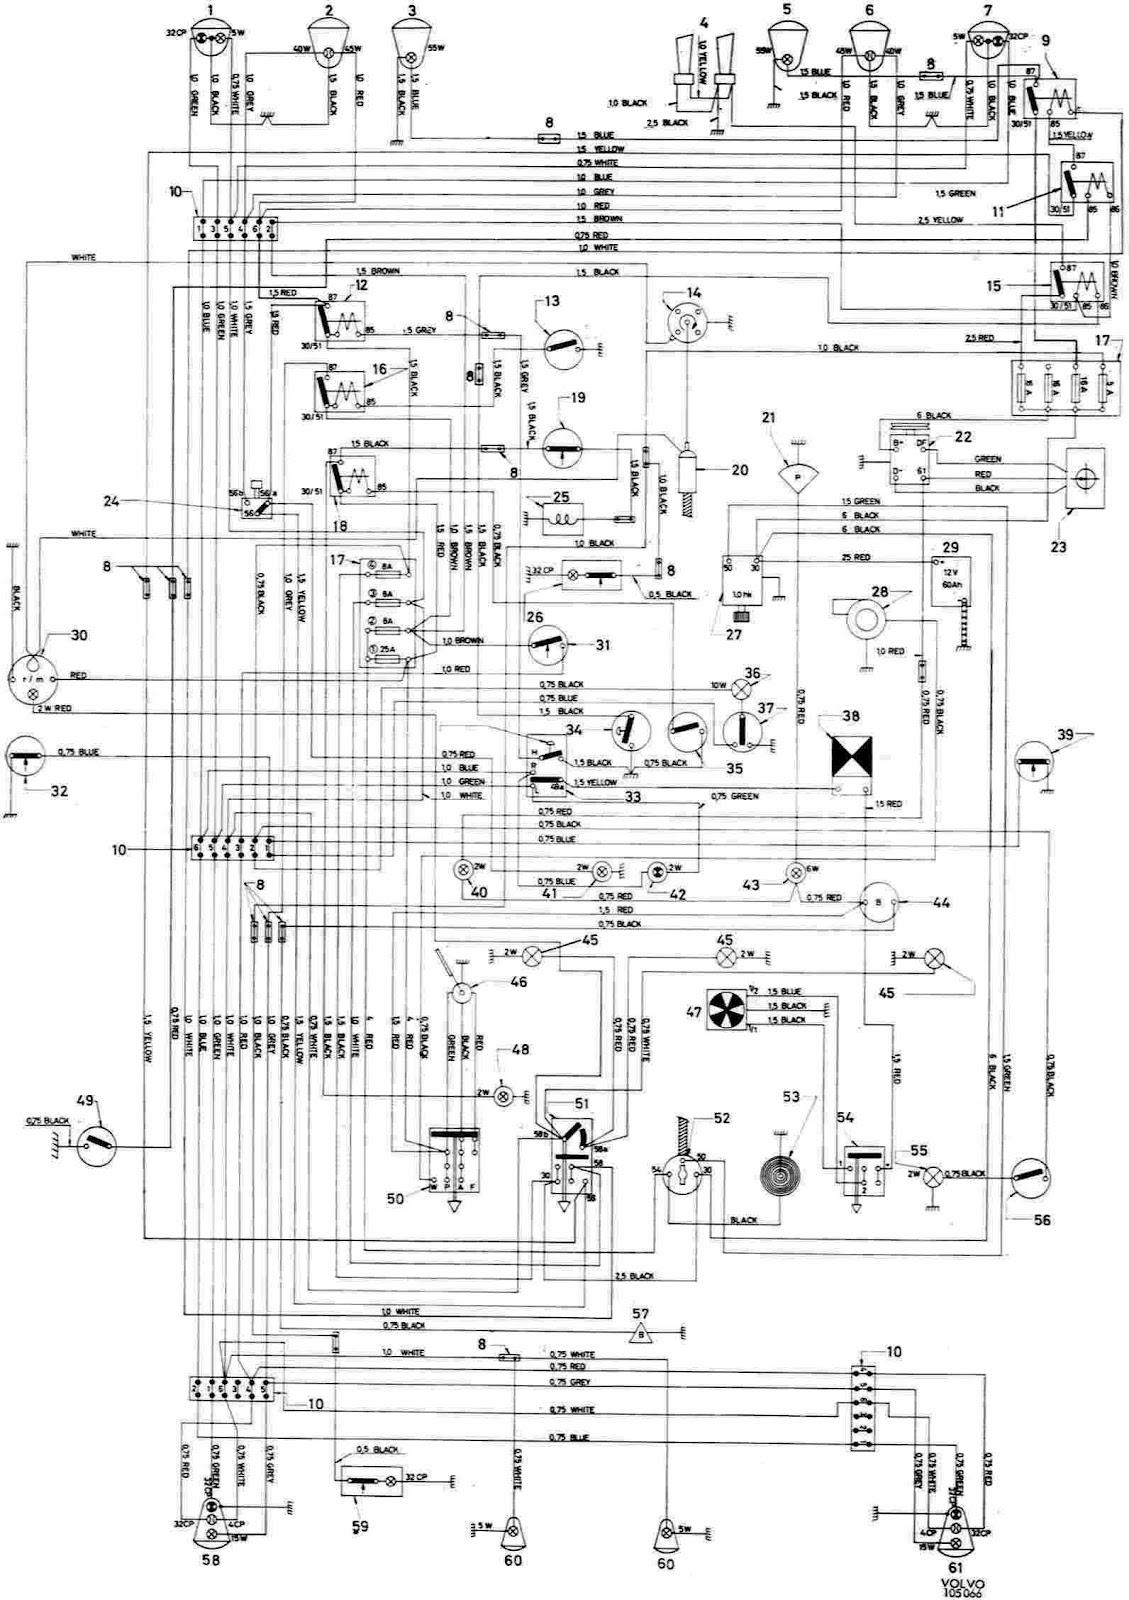 Volvo+123+GT+Complete+Wiring+Diagram 2005 volvo s40 wiring diagram volvo s40 steering diagram \u2022 wiring volvo xc90 stereo wiring diagram at reclaimingppi.co